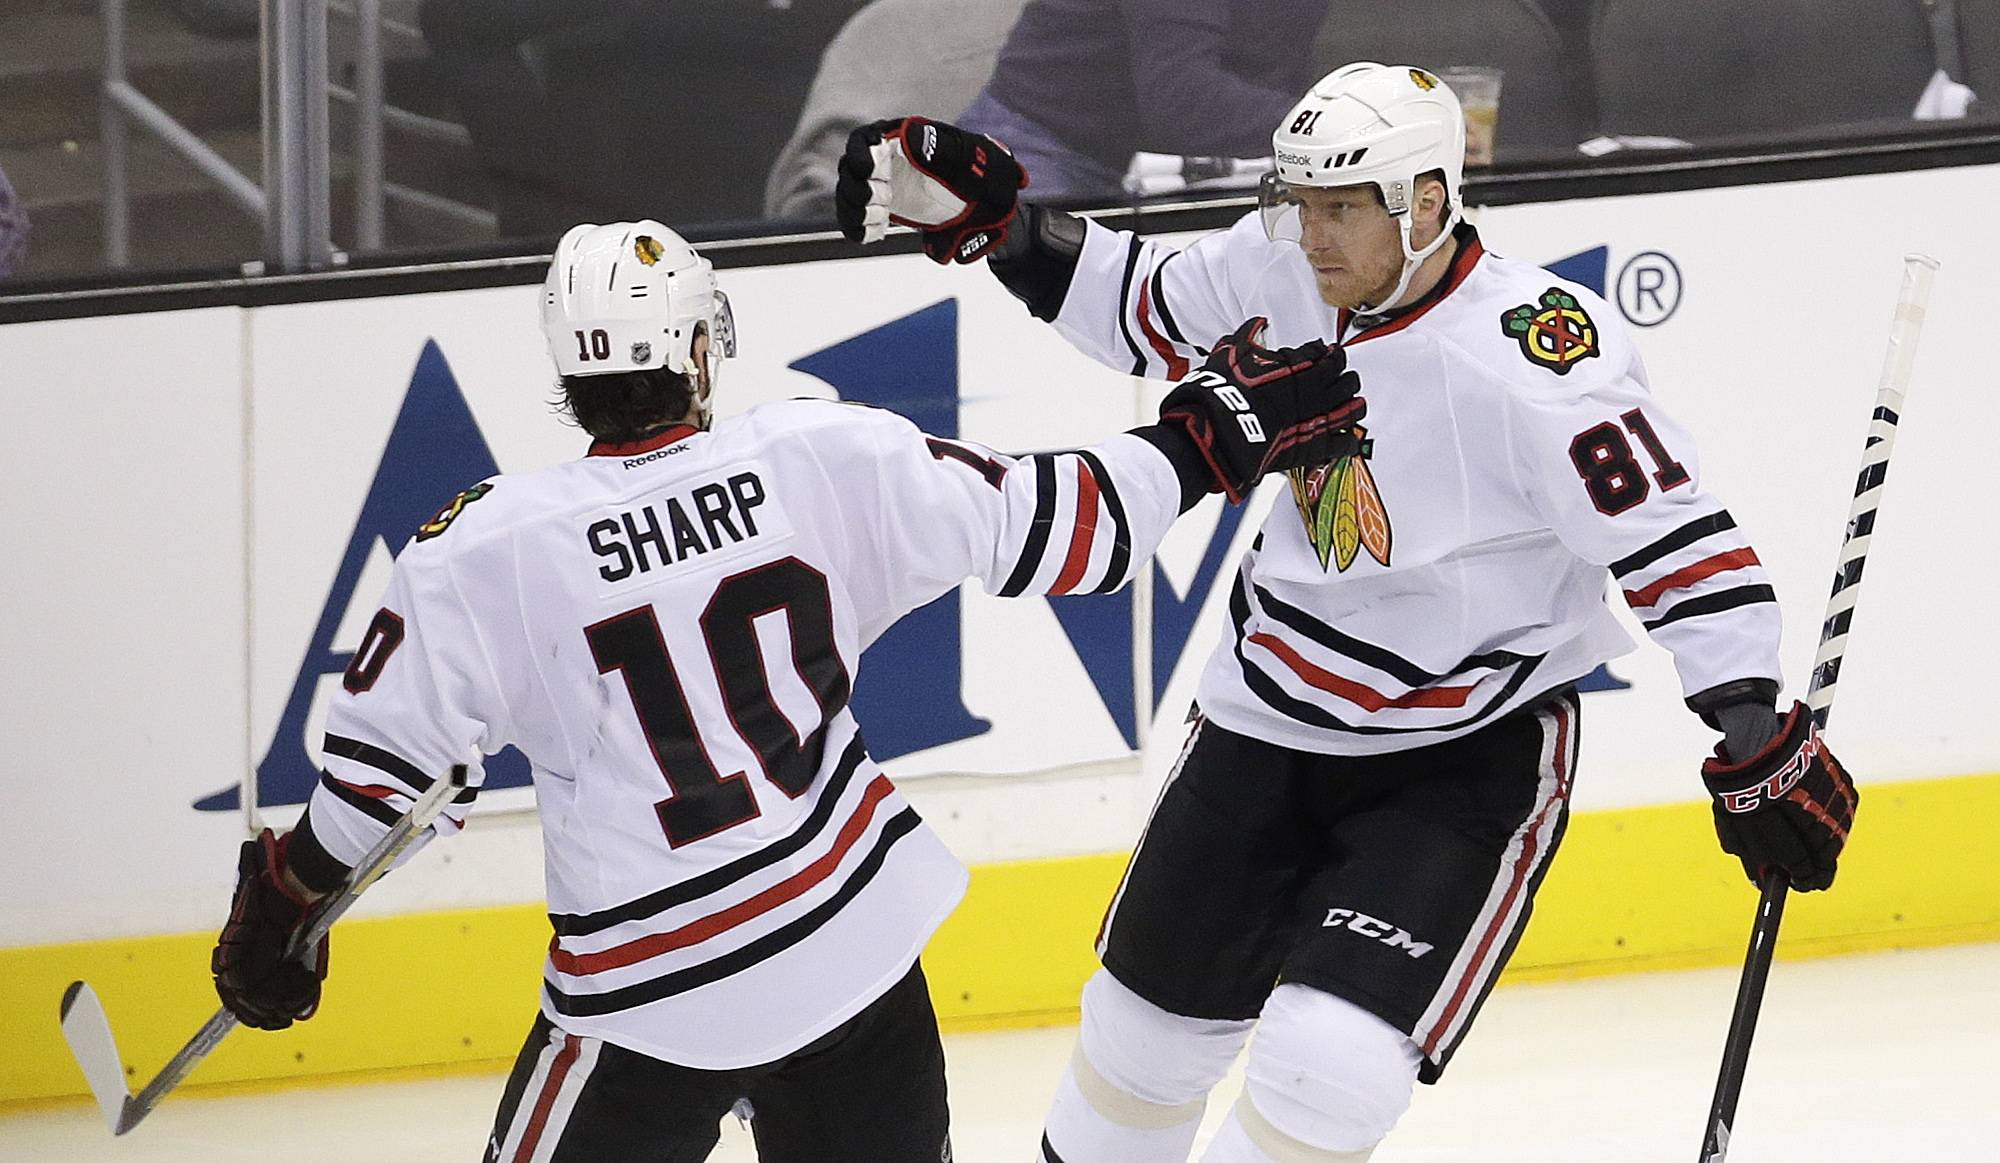 Images: Blackhawks vs. Kings, Game Four